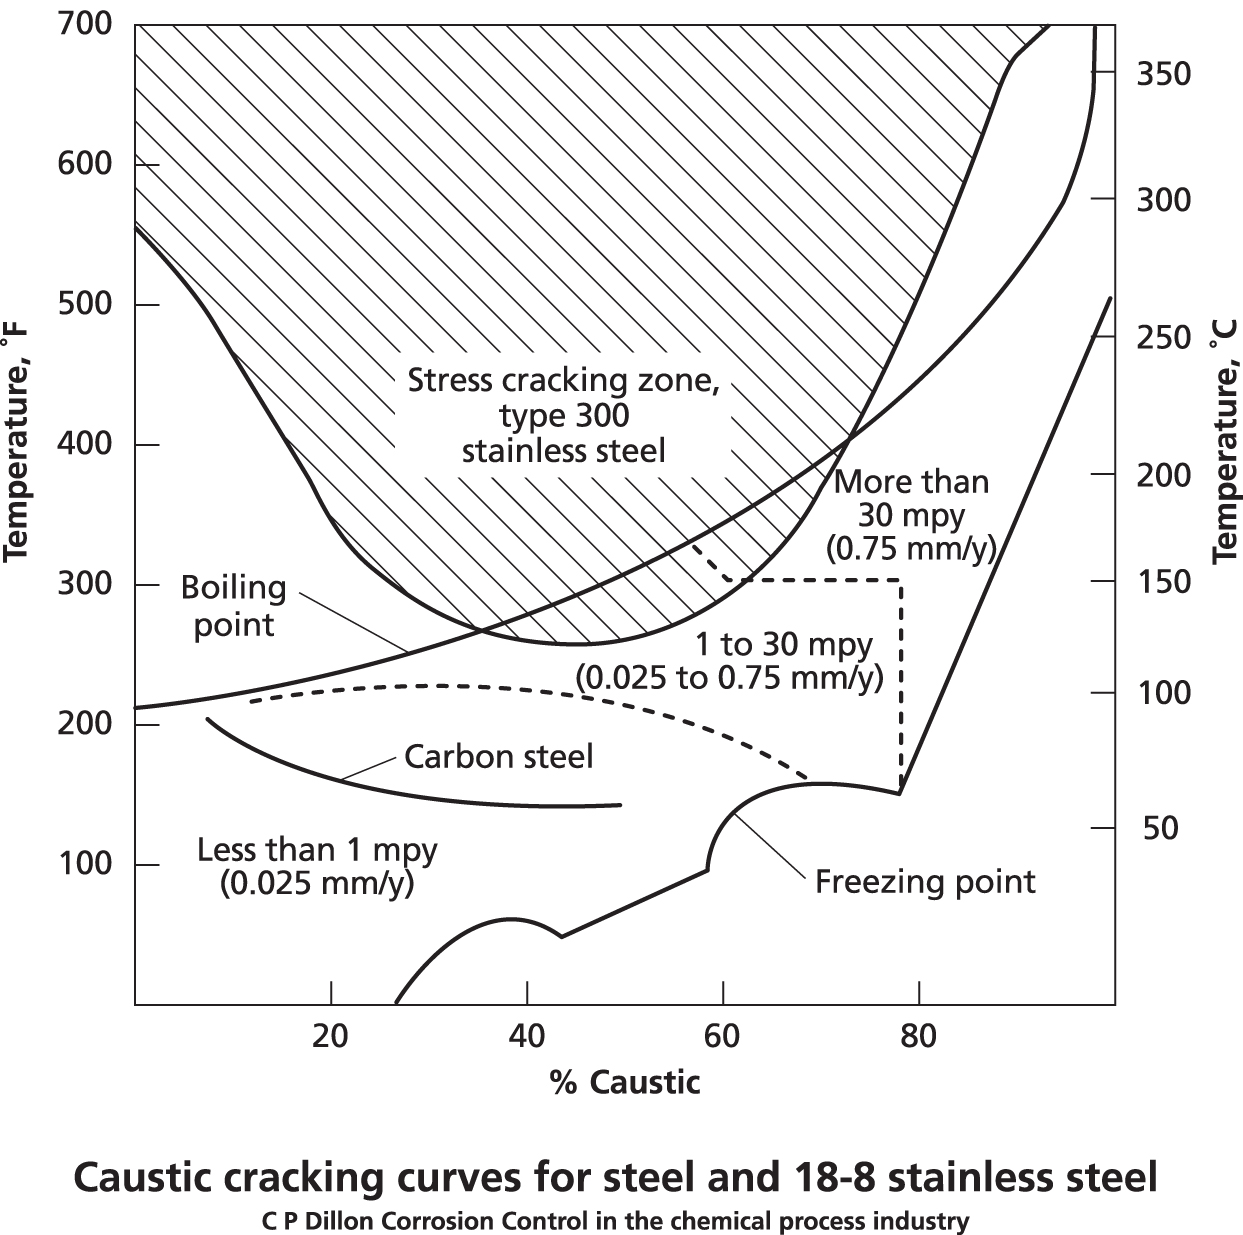 Faq 9 Welding Dissimilar Metals Chrysler Marine Cooling Diagram Summary If You Intend To Use A Stainless Steel With New Relatively Pure Chemical Iso Corrosion Curves Offer An Initial Guide The Temperature And